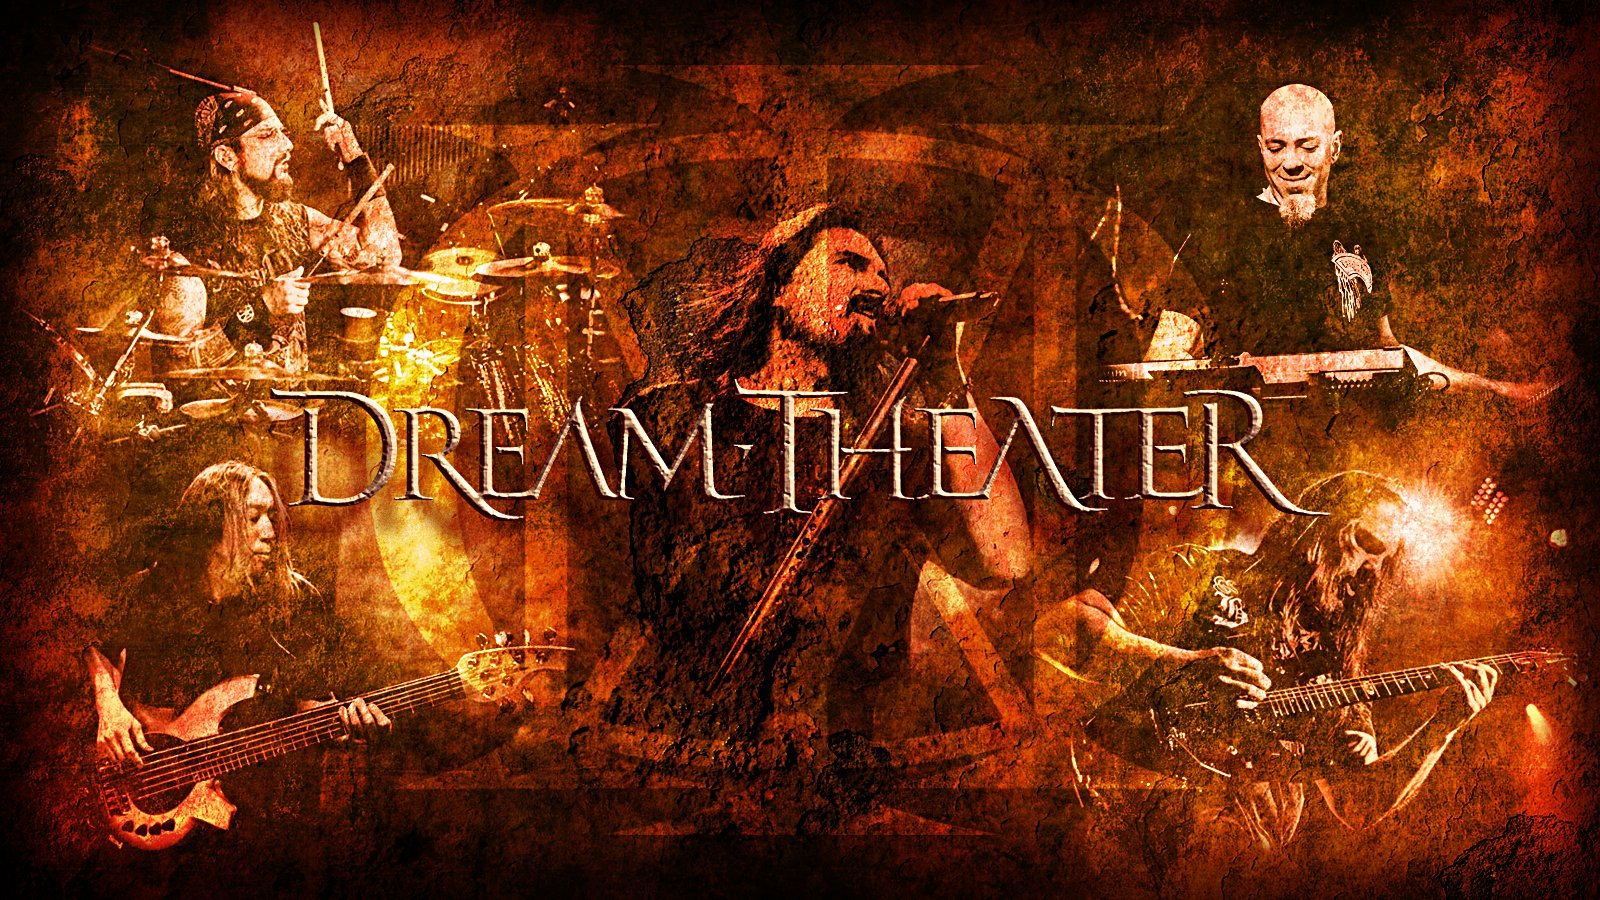 Free Desktop Wallpaper Scripture Fall Dream Theater Wallpaper And Background Image 1600x900